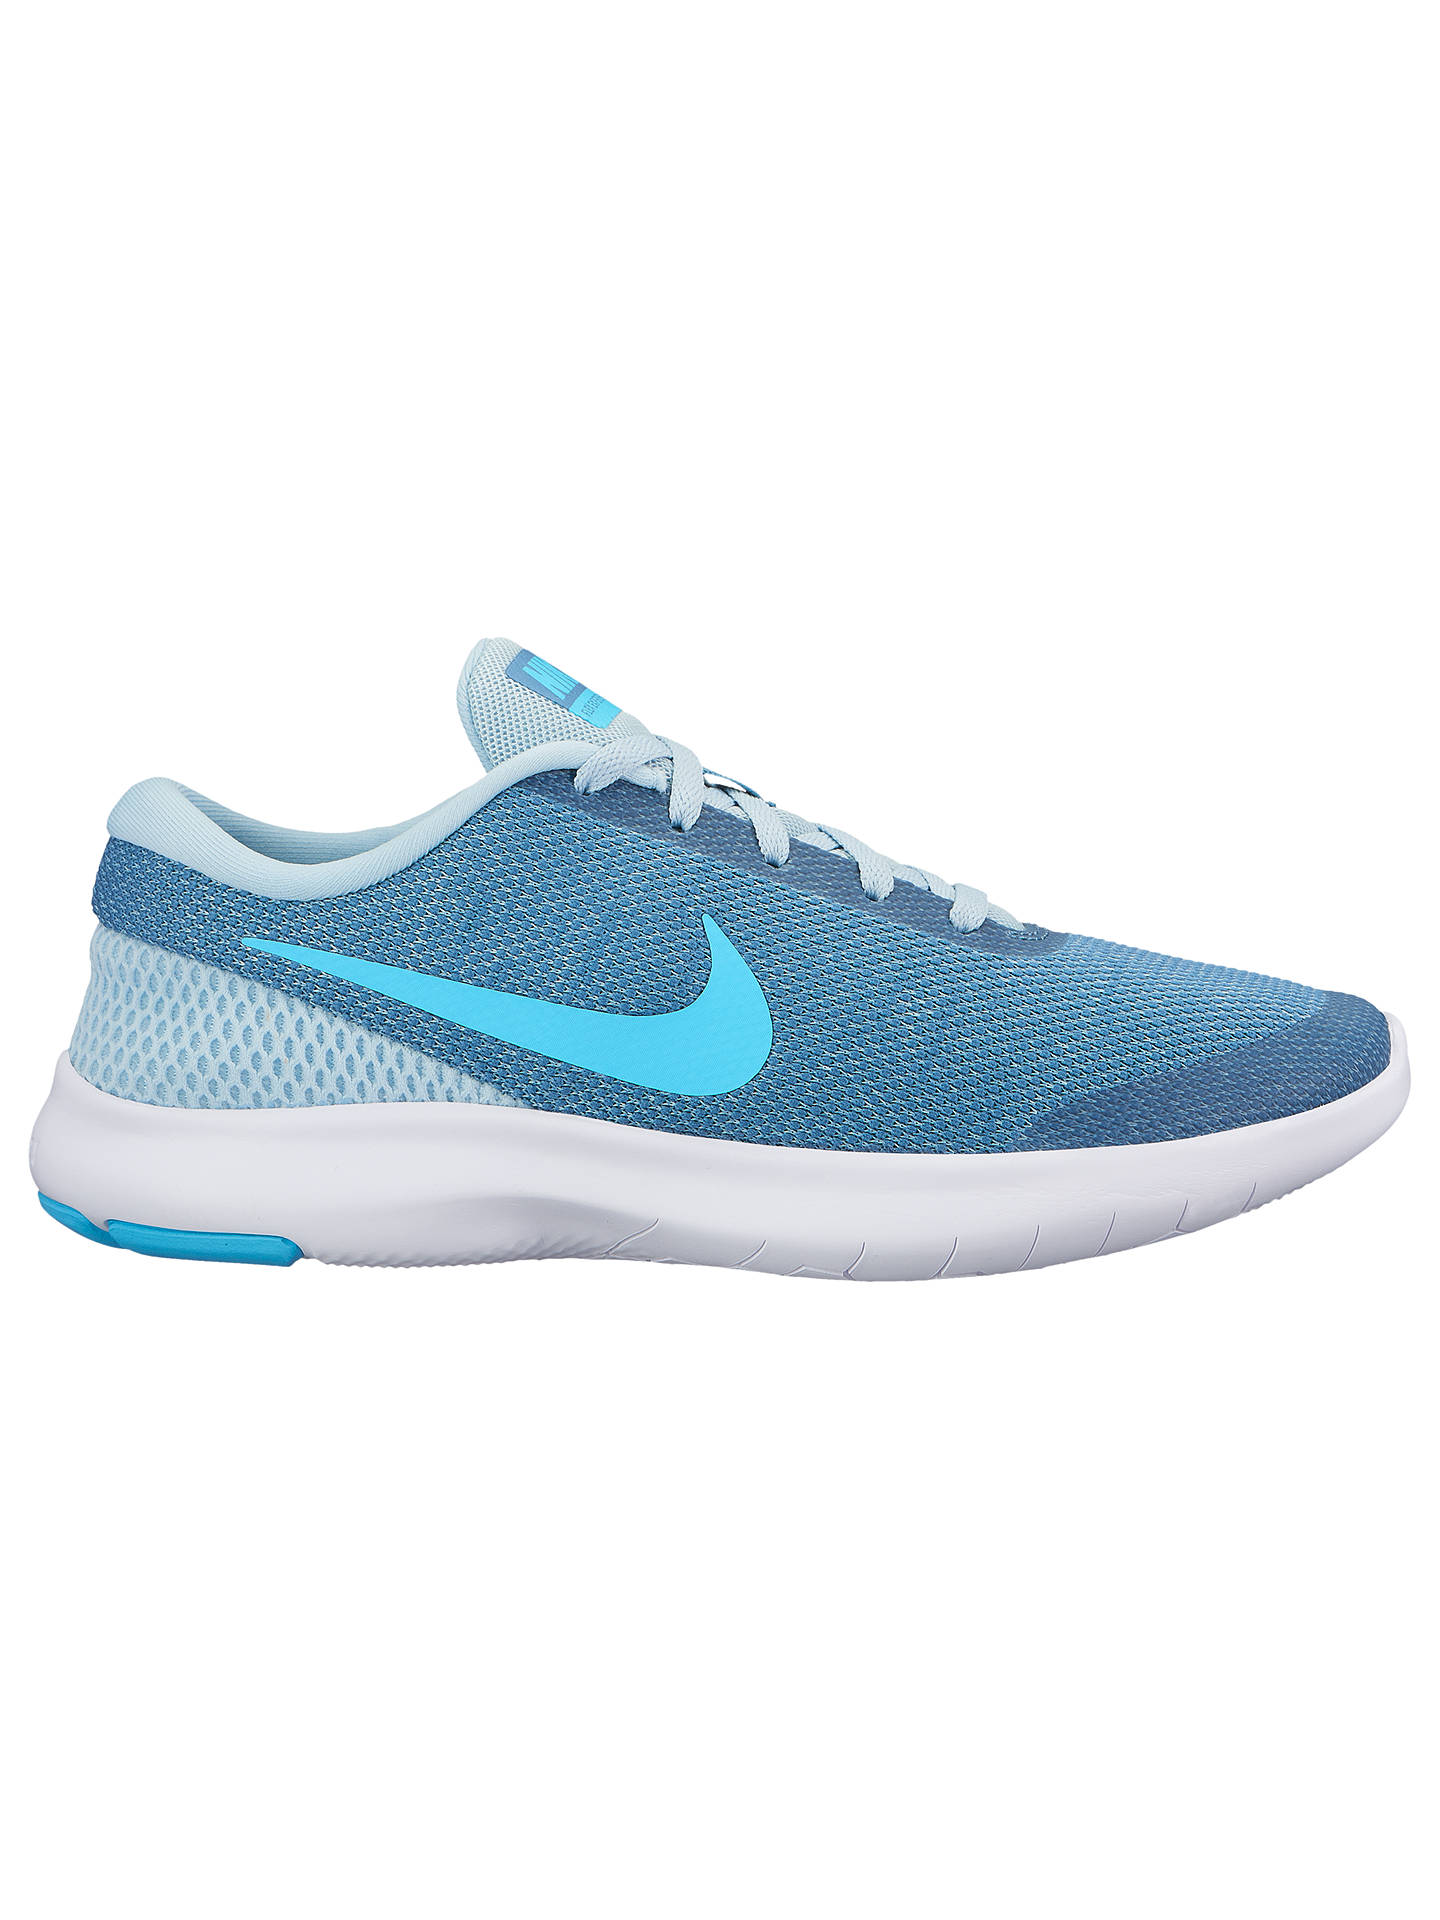 50549c6c2717 Nike Flex Experience RN 7 Women s Running Shoes at John Lewis   Partners